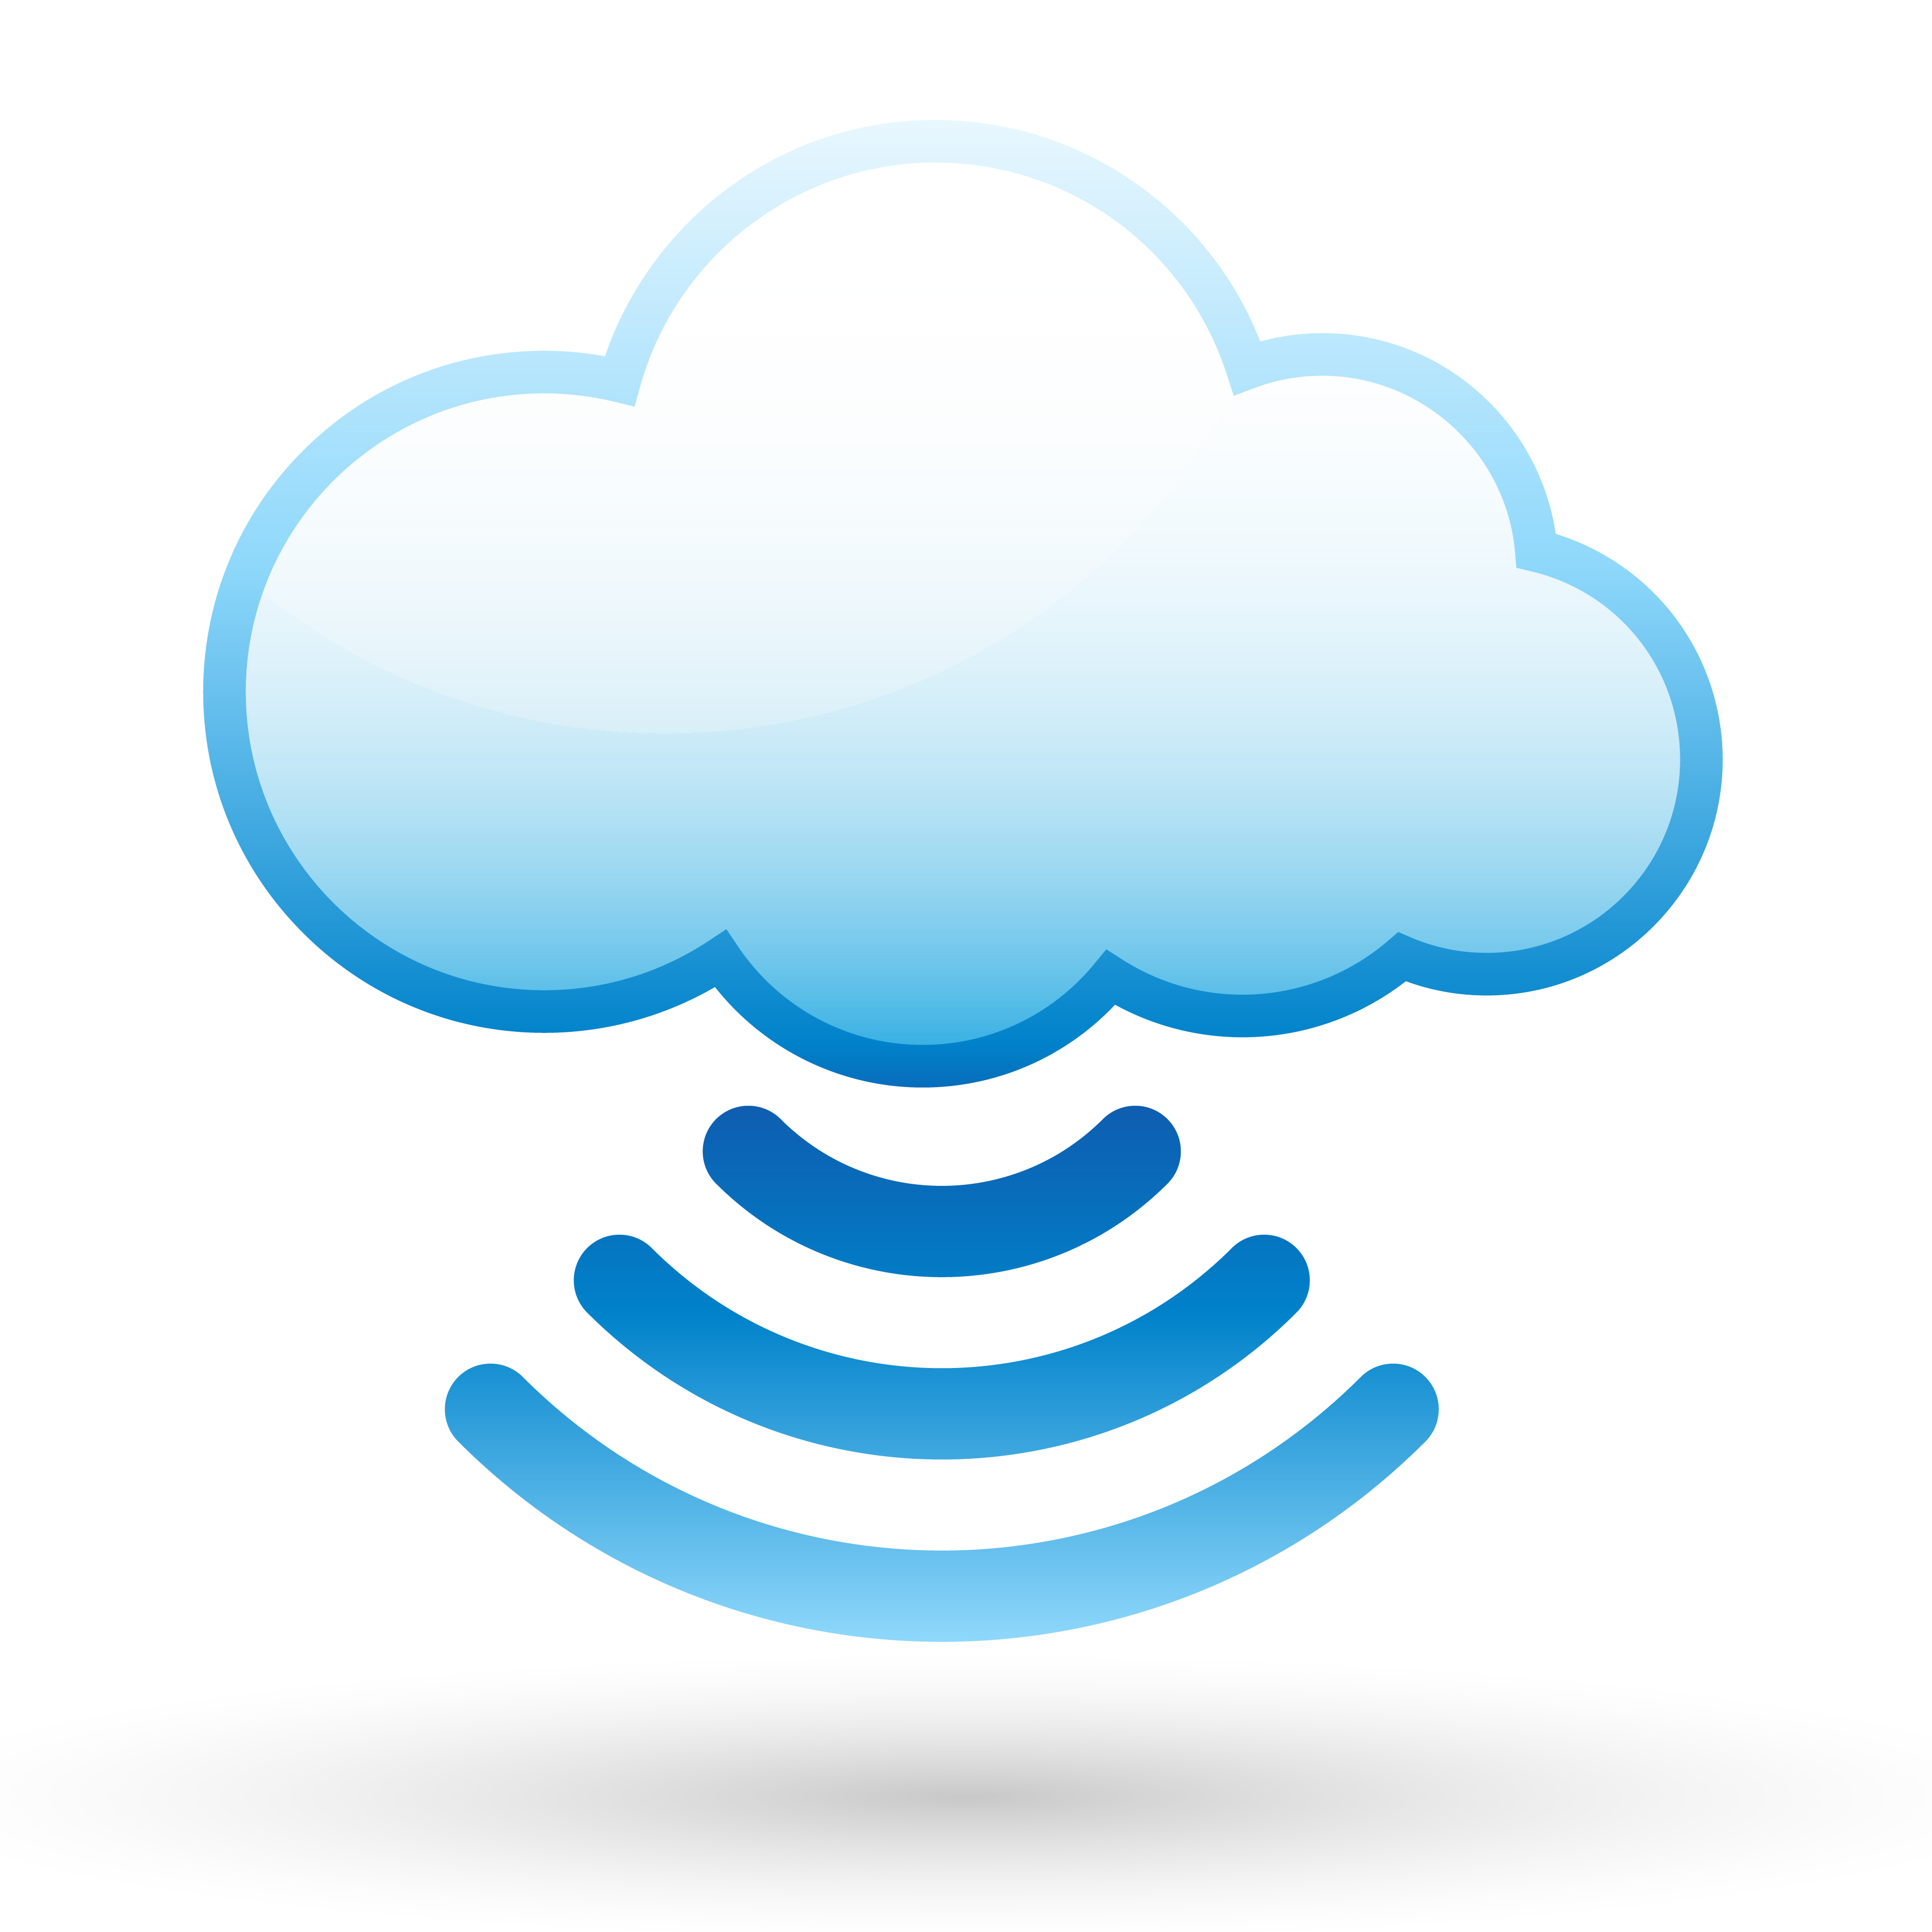 5 Cloud Computing Icon Images